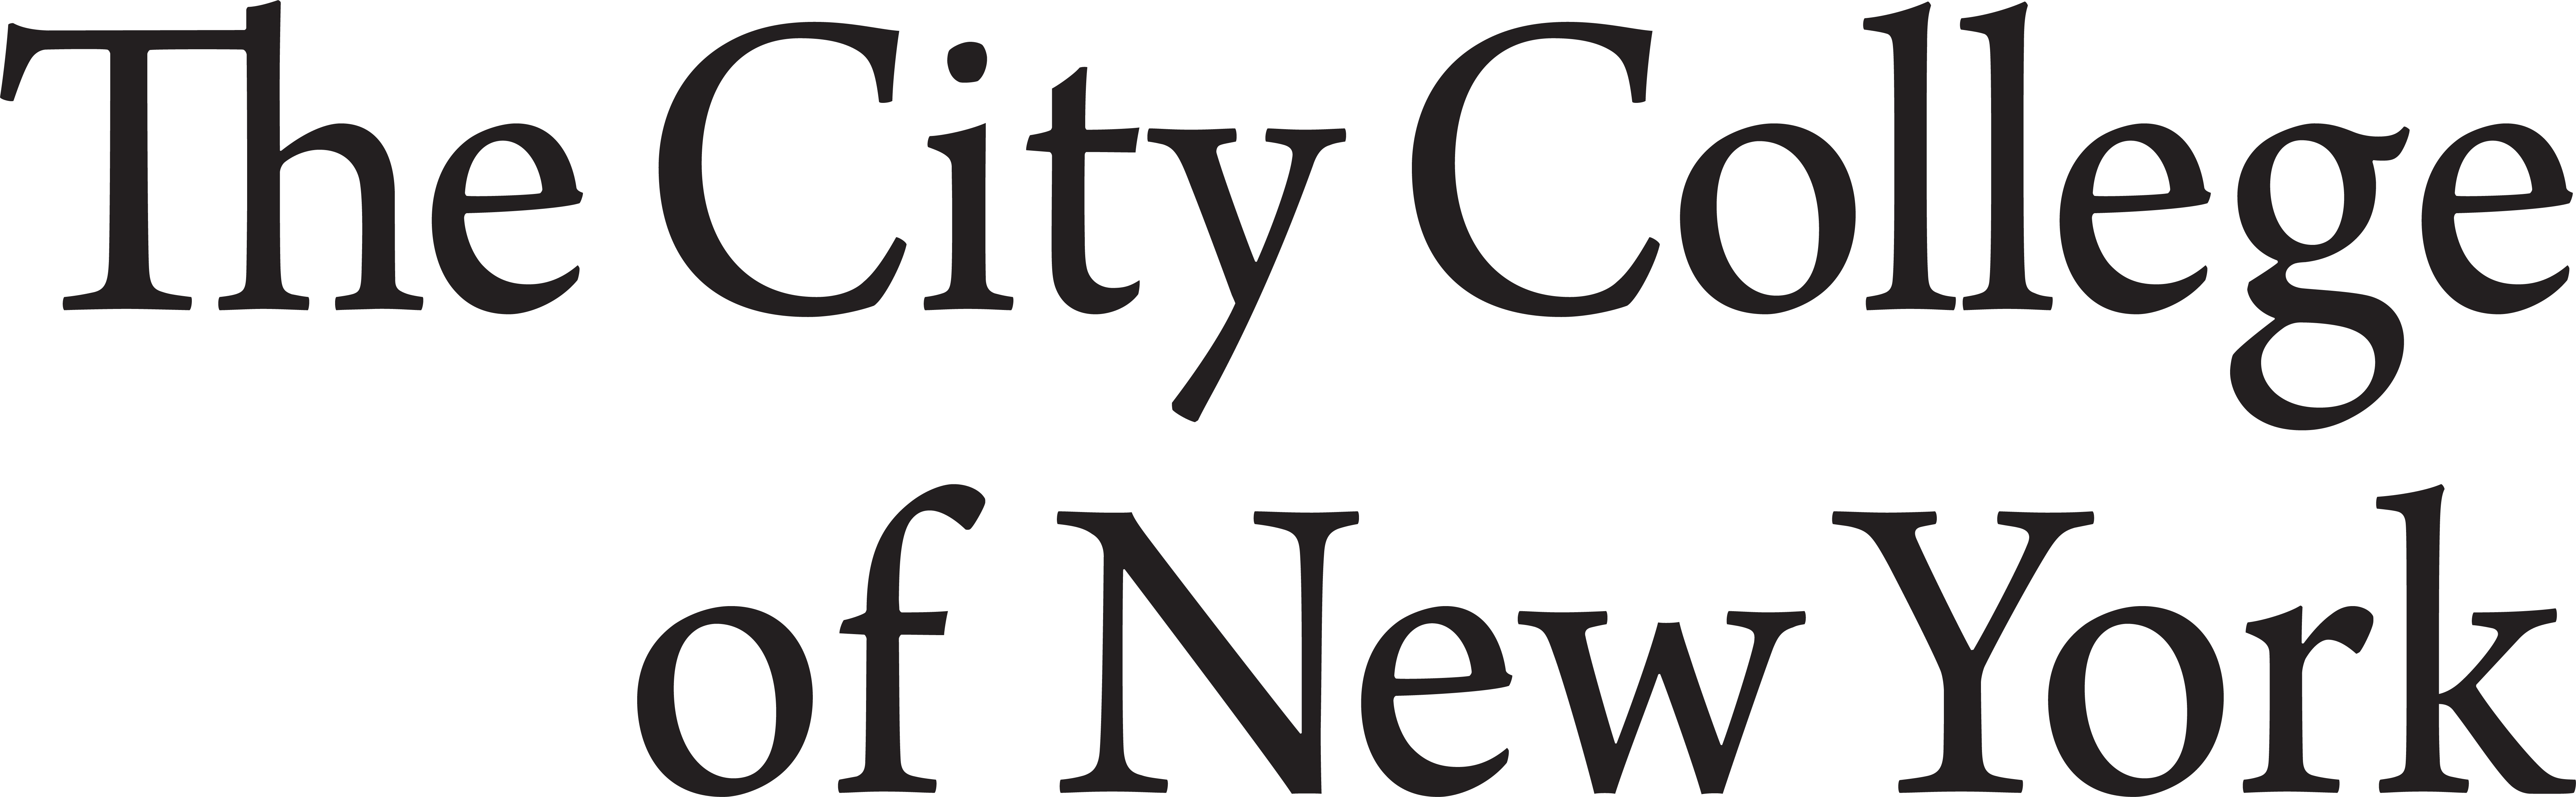 The City College of New York Website Link